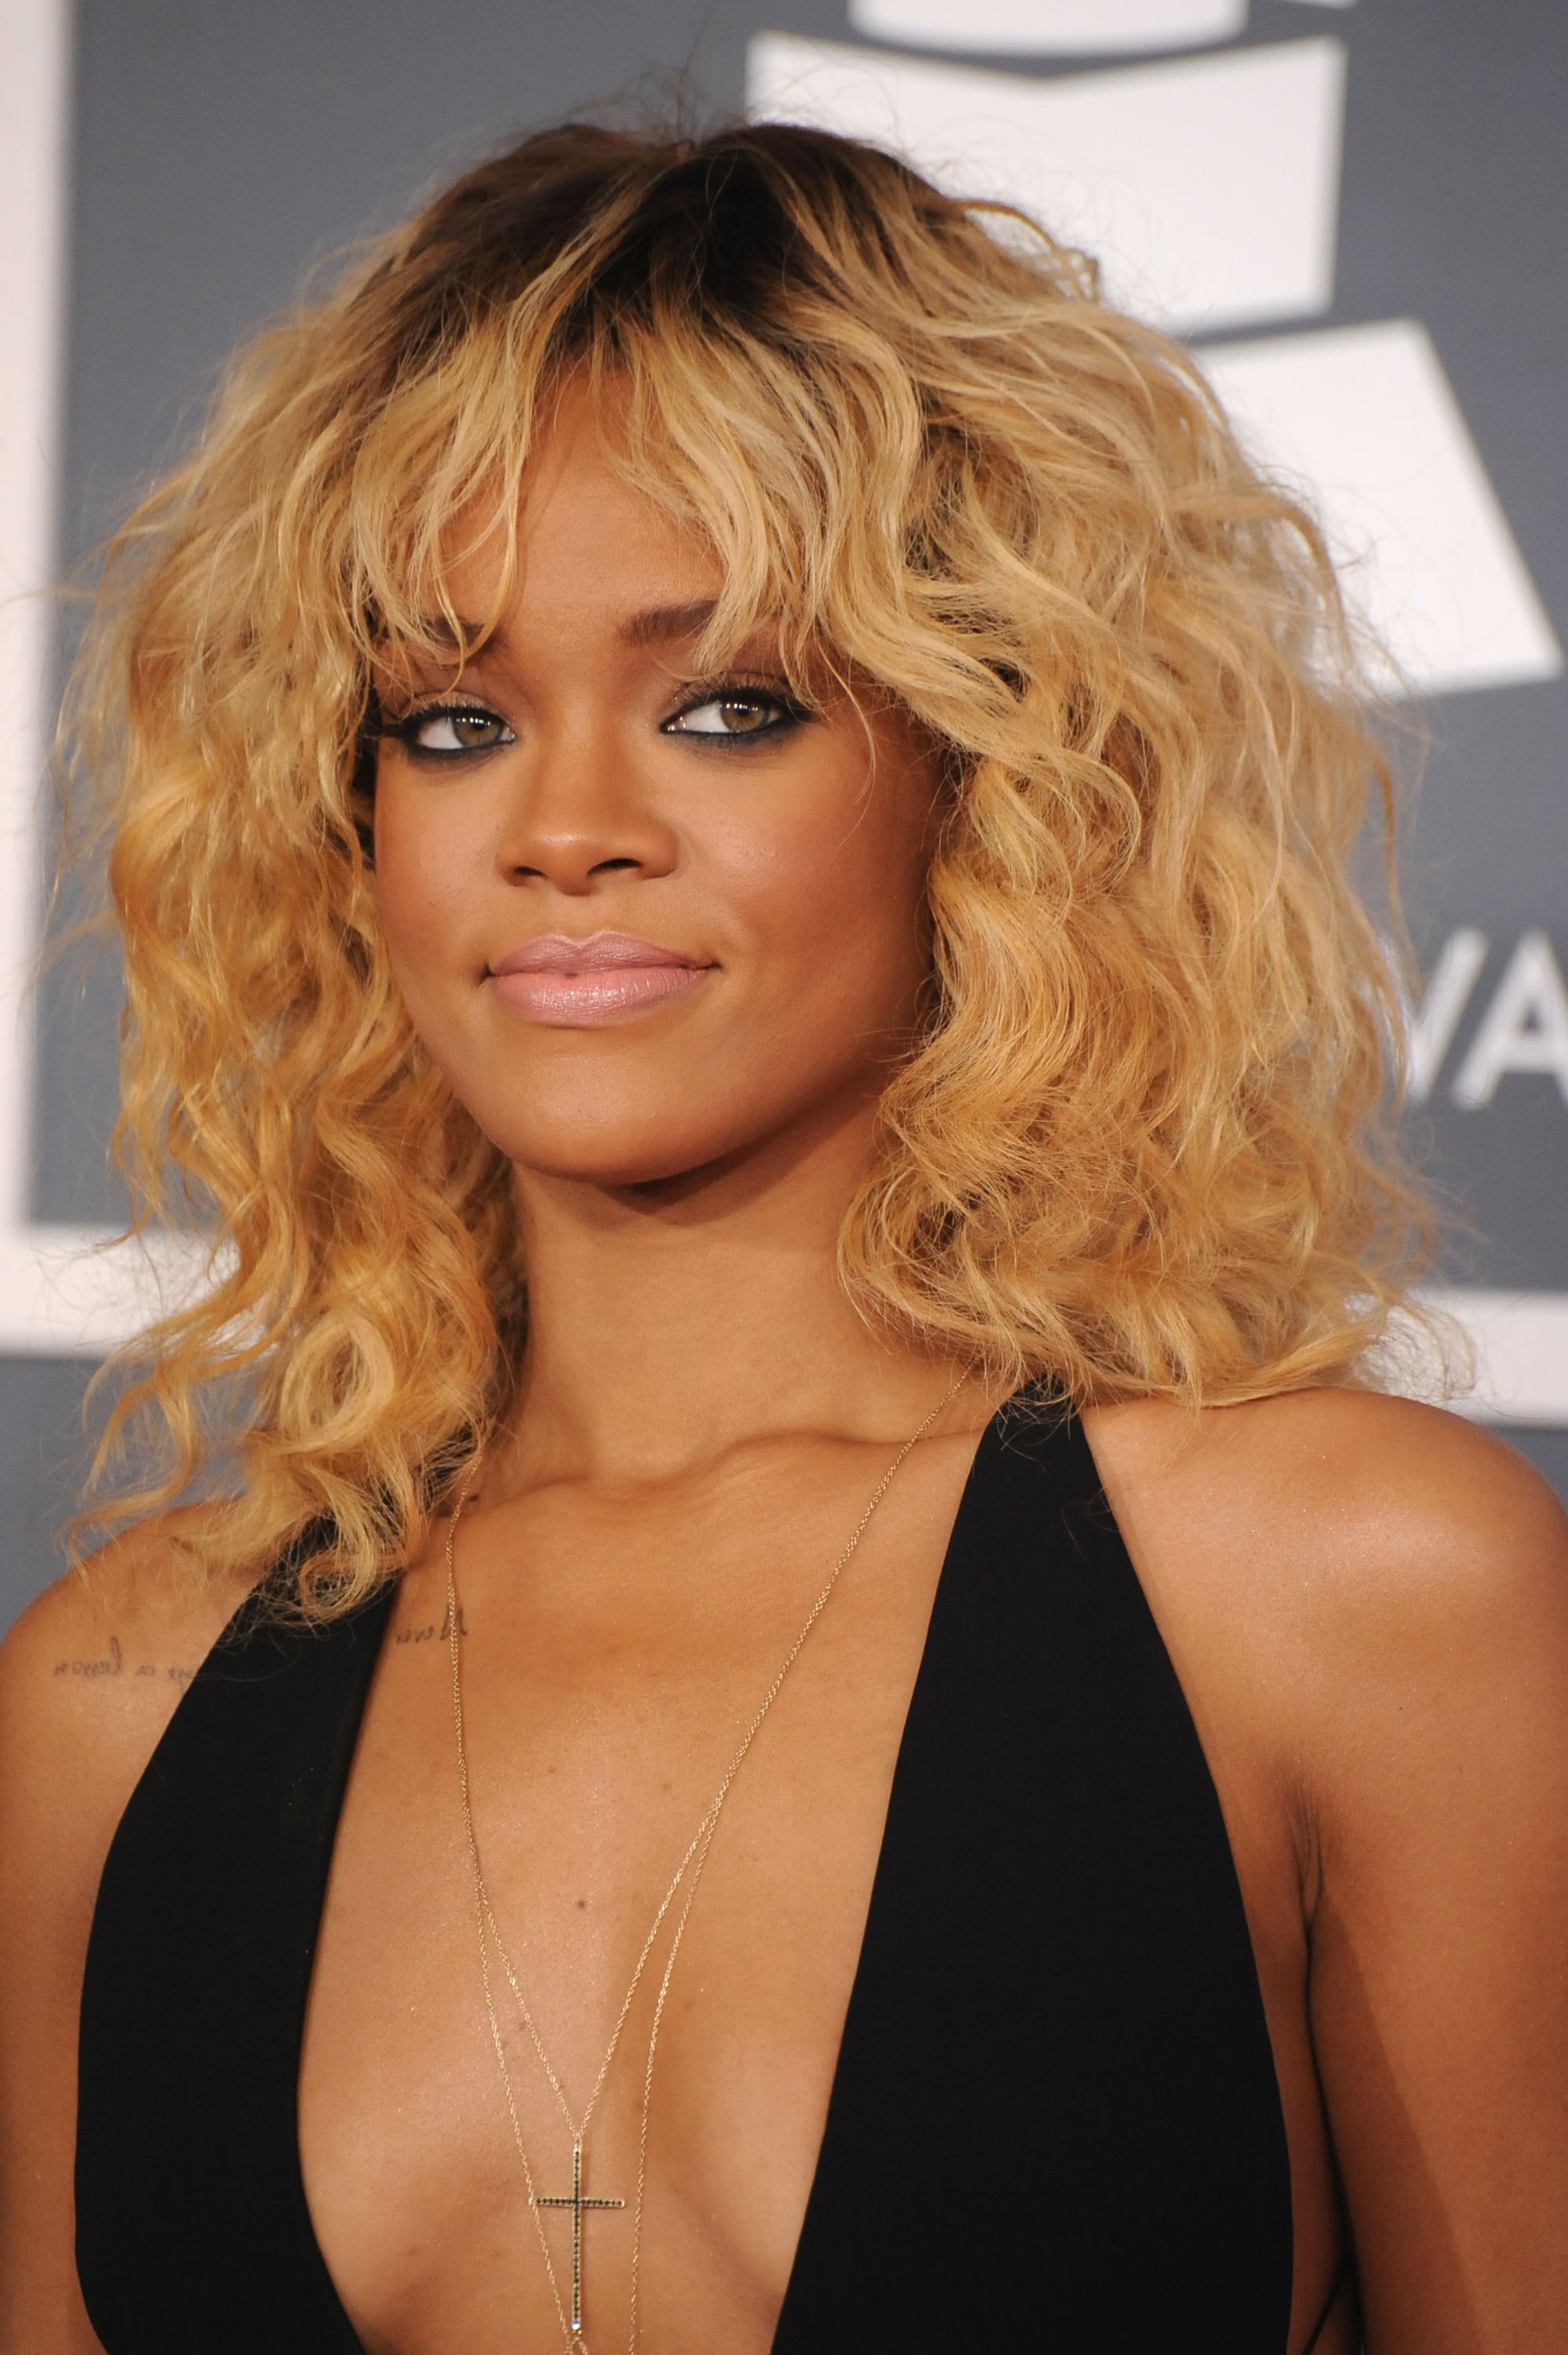 Rihanna with blond hair at the Grammys.